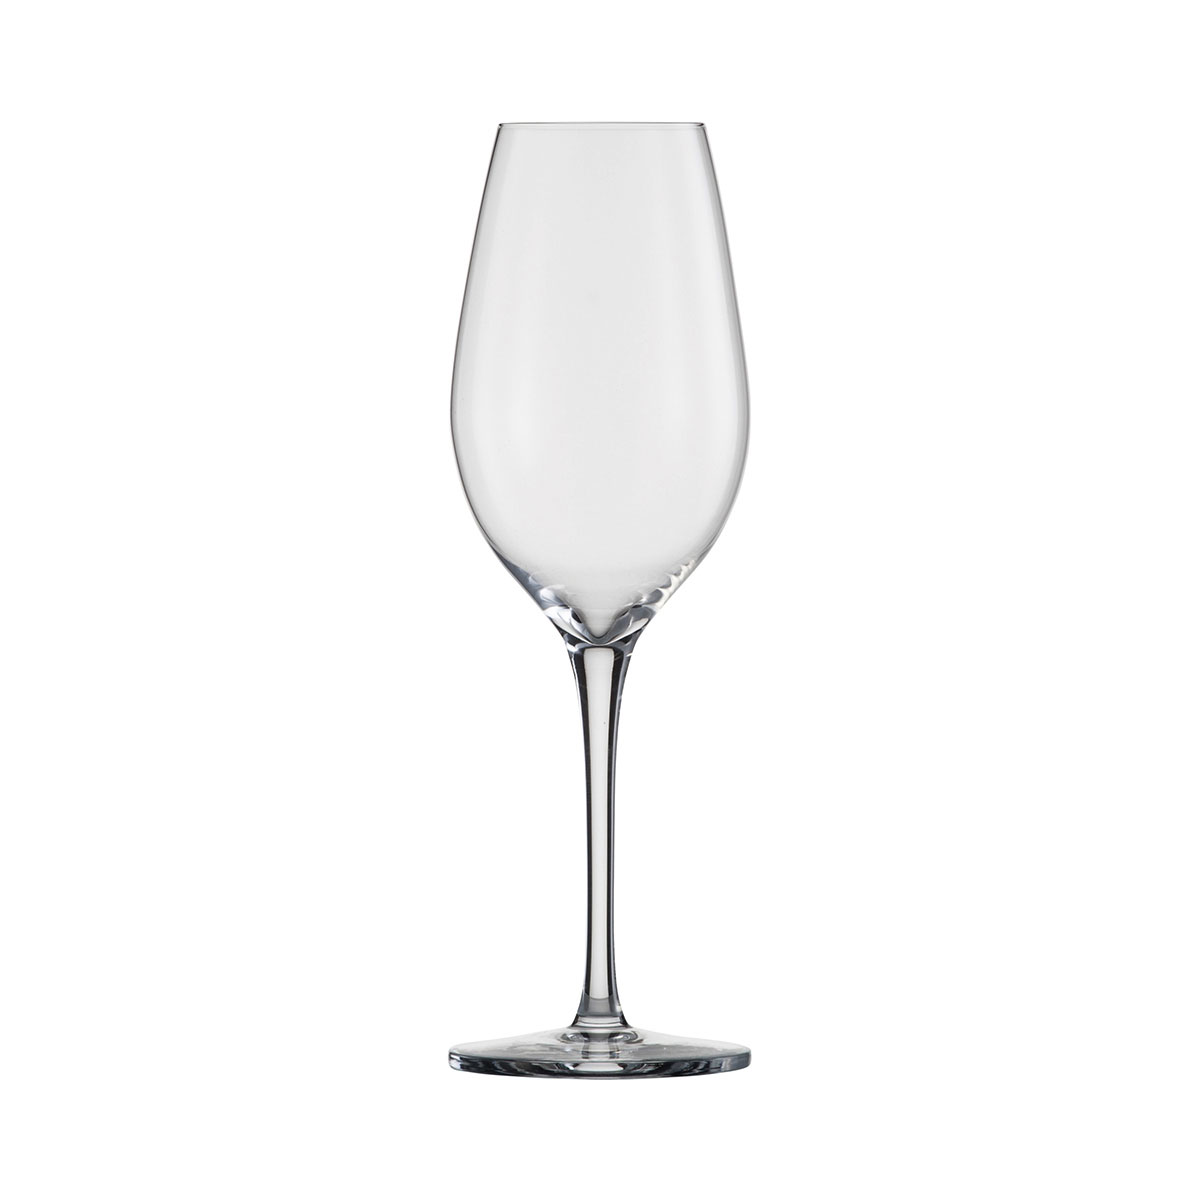 Schott Zwiesel Tritan Fiesta Champagne Flute with Effervescent Point, Single